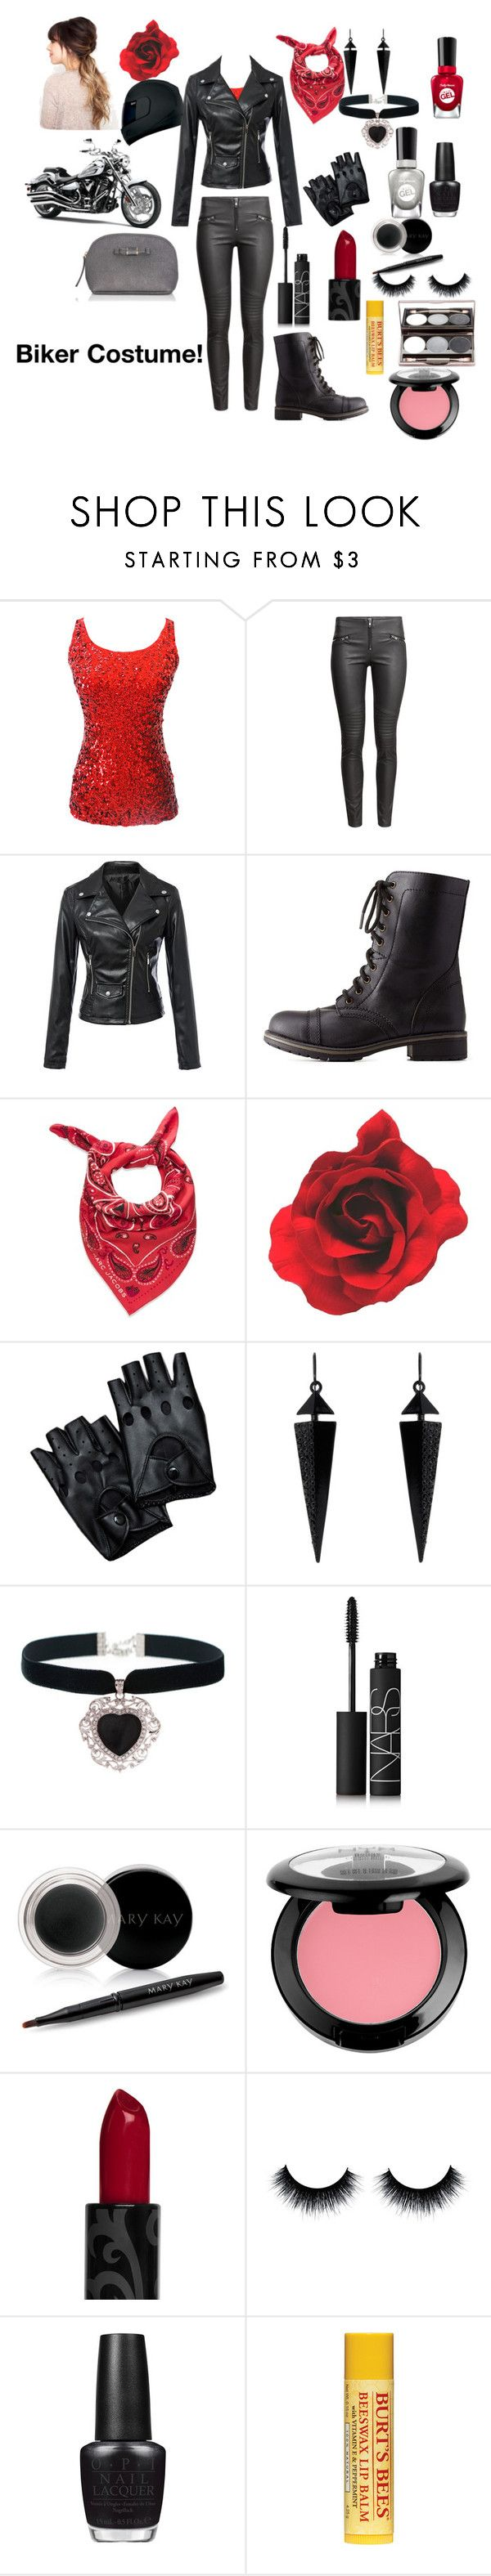 """#Biker Costume! #Halloween"" by joyfulsoul20 ❤ liked on Polyvore featuring H&M, Charlotte Russe, Marc by Marc Jacobs, Oasis, Rock 'N Rose, NARS Cosmetics, Mary Kay, NYX, OPI and Sally Hansen"